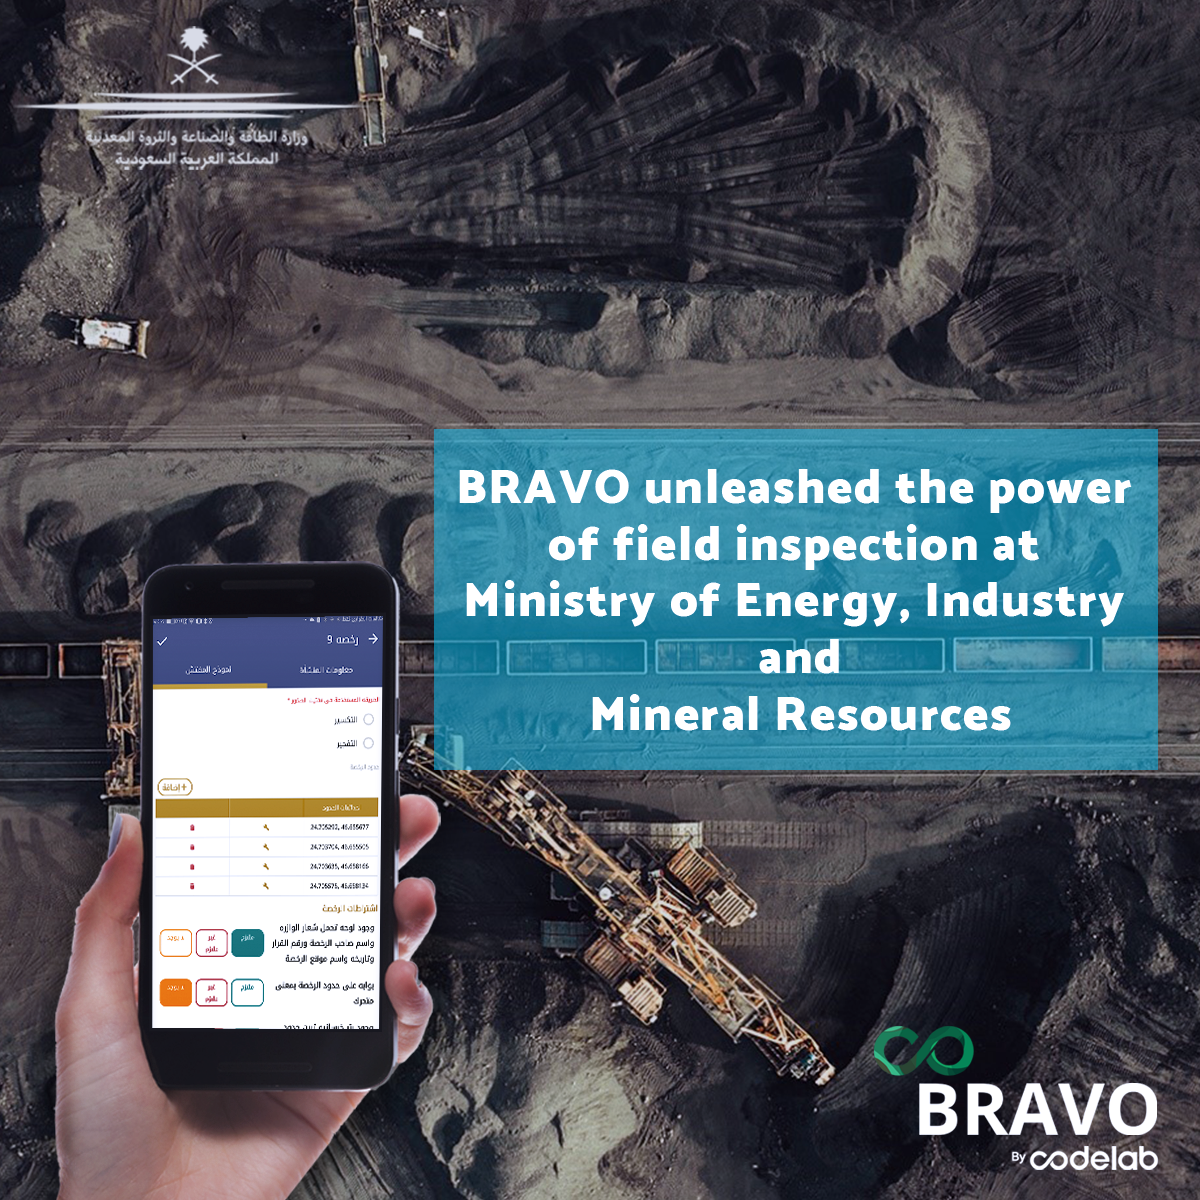 BRAVO unleashed the power of field inspection at MIEM